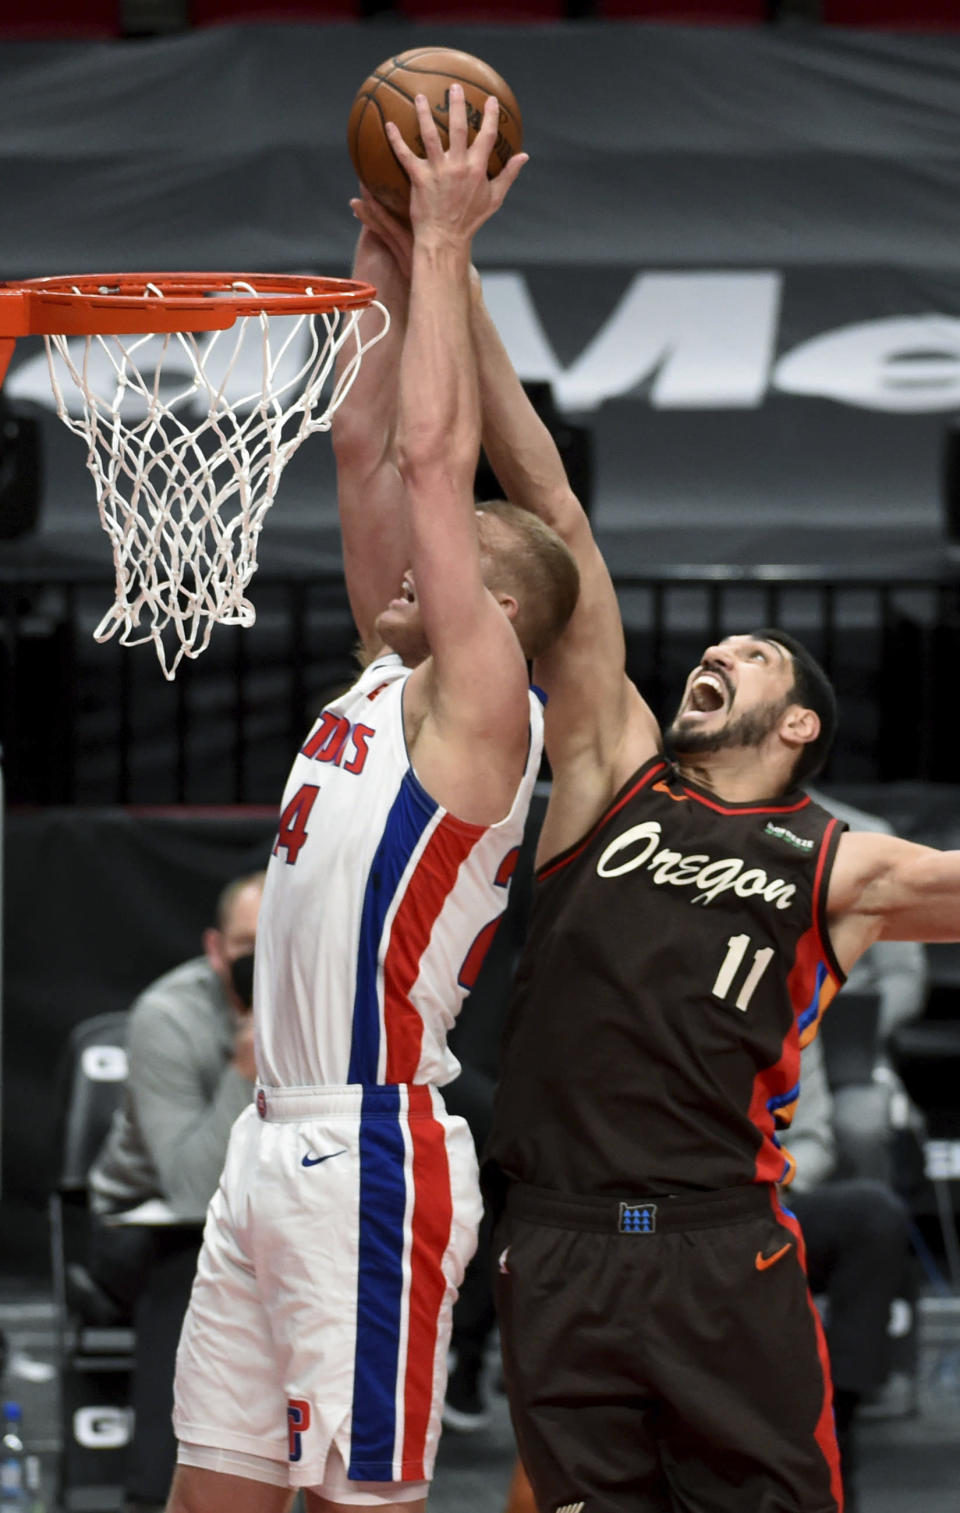 Detroit Pistons center Mason Plumlee, left, and Portland Trail Blazers center Enes Kanter, right go up for a rebound during the first half of an NBA basketball game in Portland, Ore., Saturday, April 10, 2021. (AP Photo/Steve Dykes)